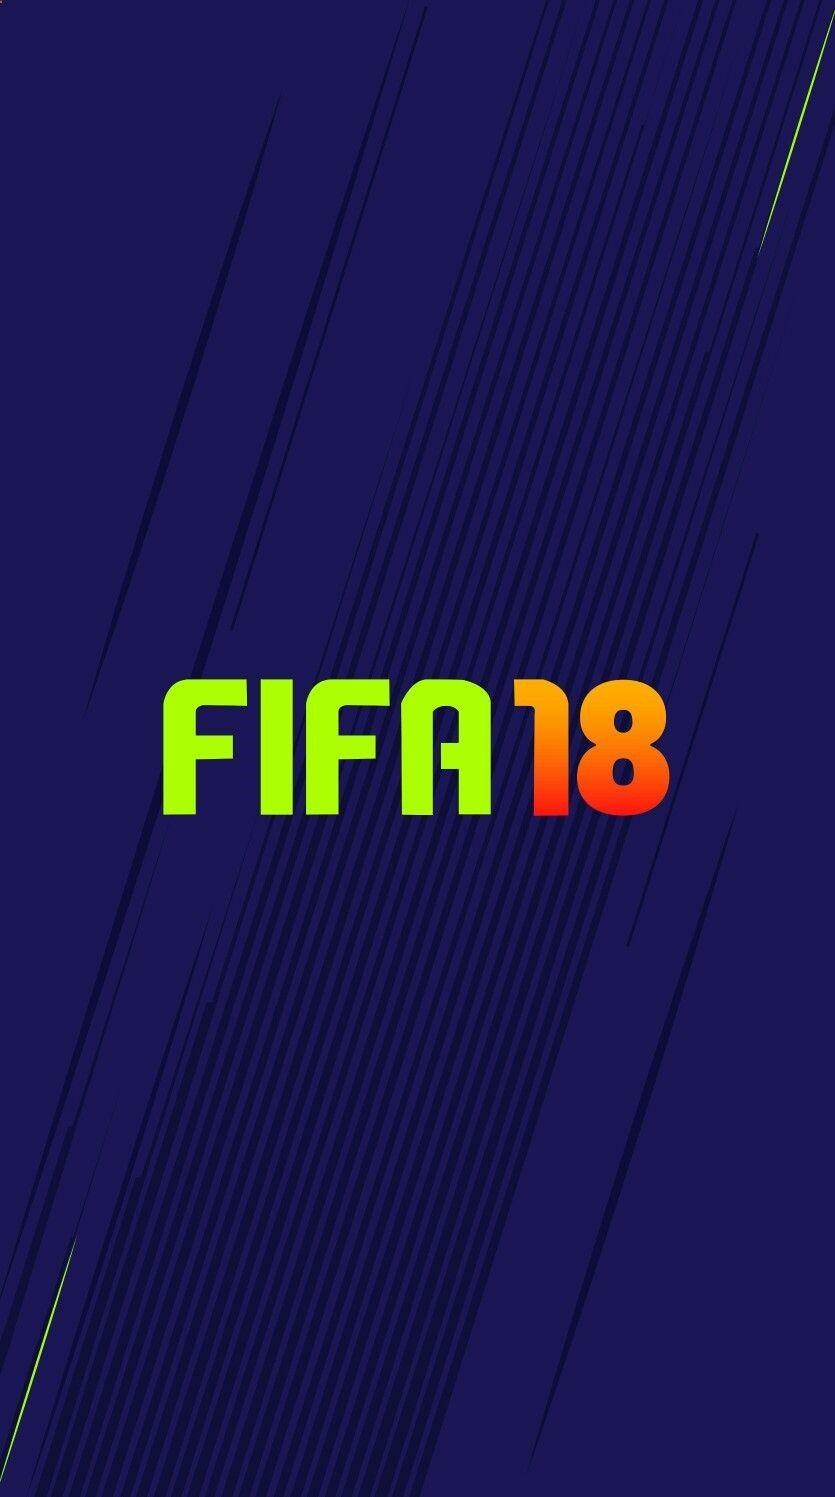 Wallpaper Football Ps4 Profil Pemain Sepak Bola